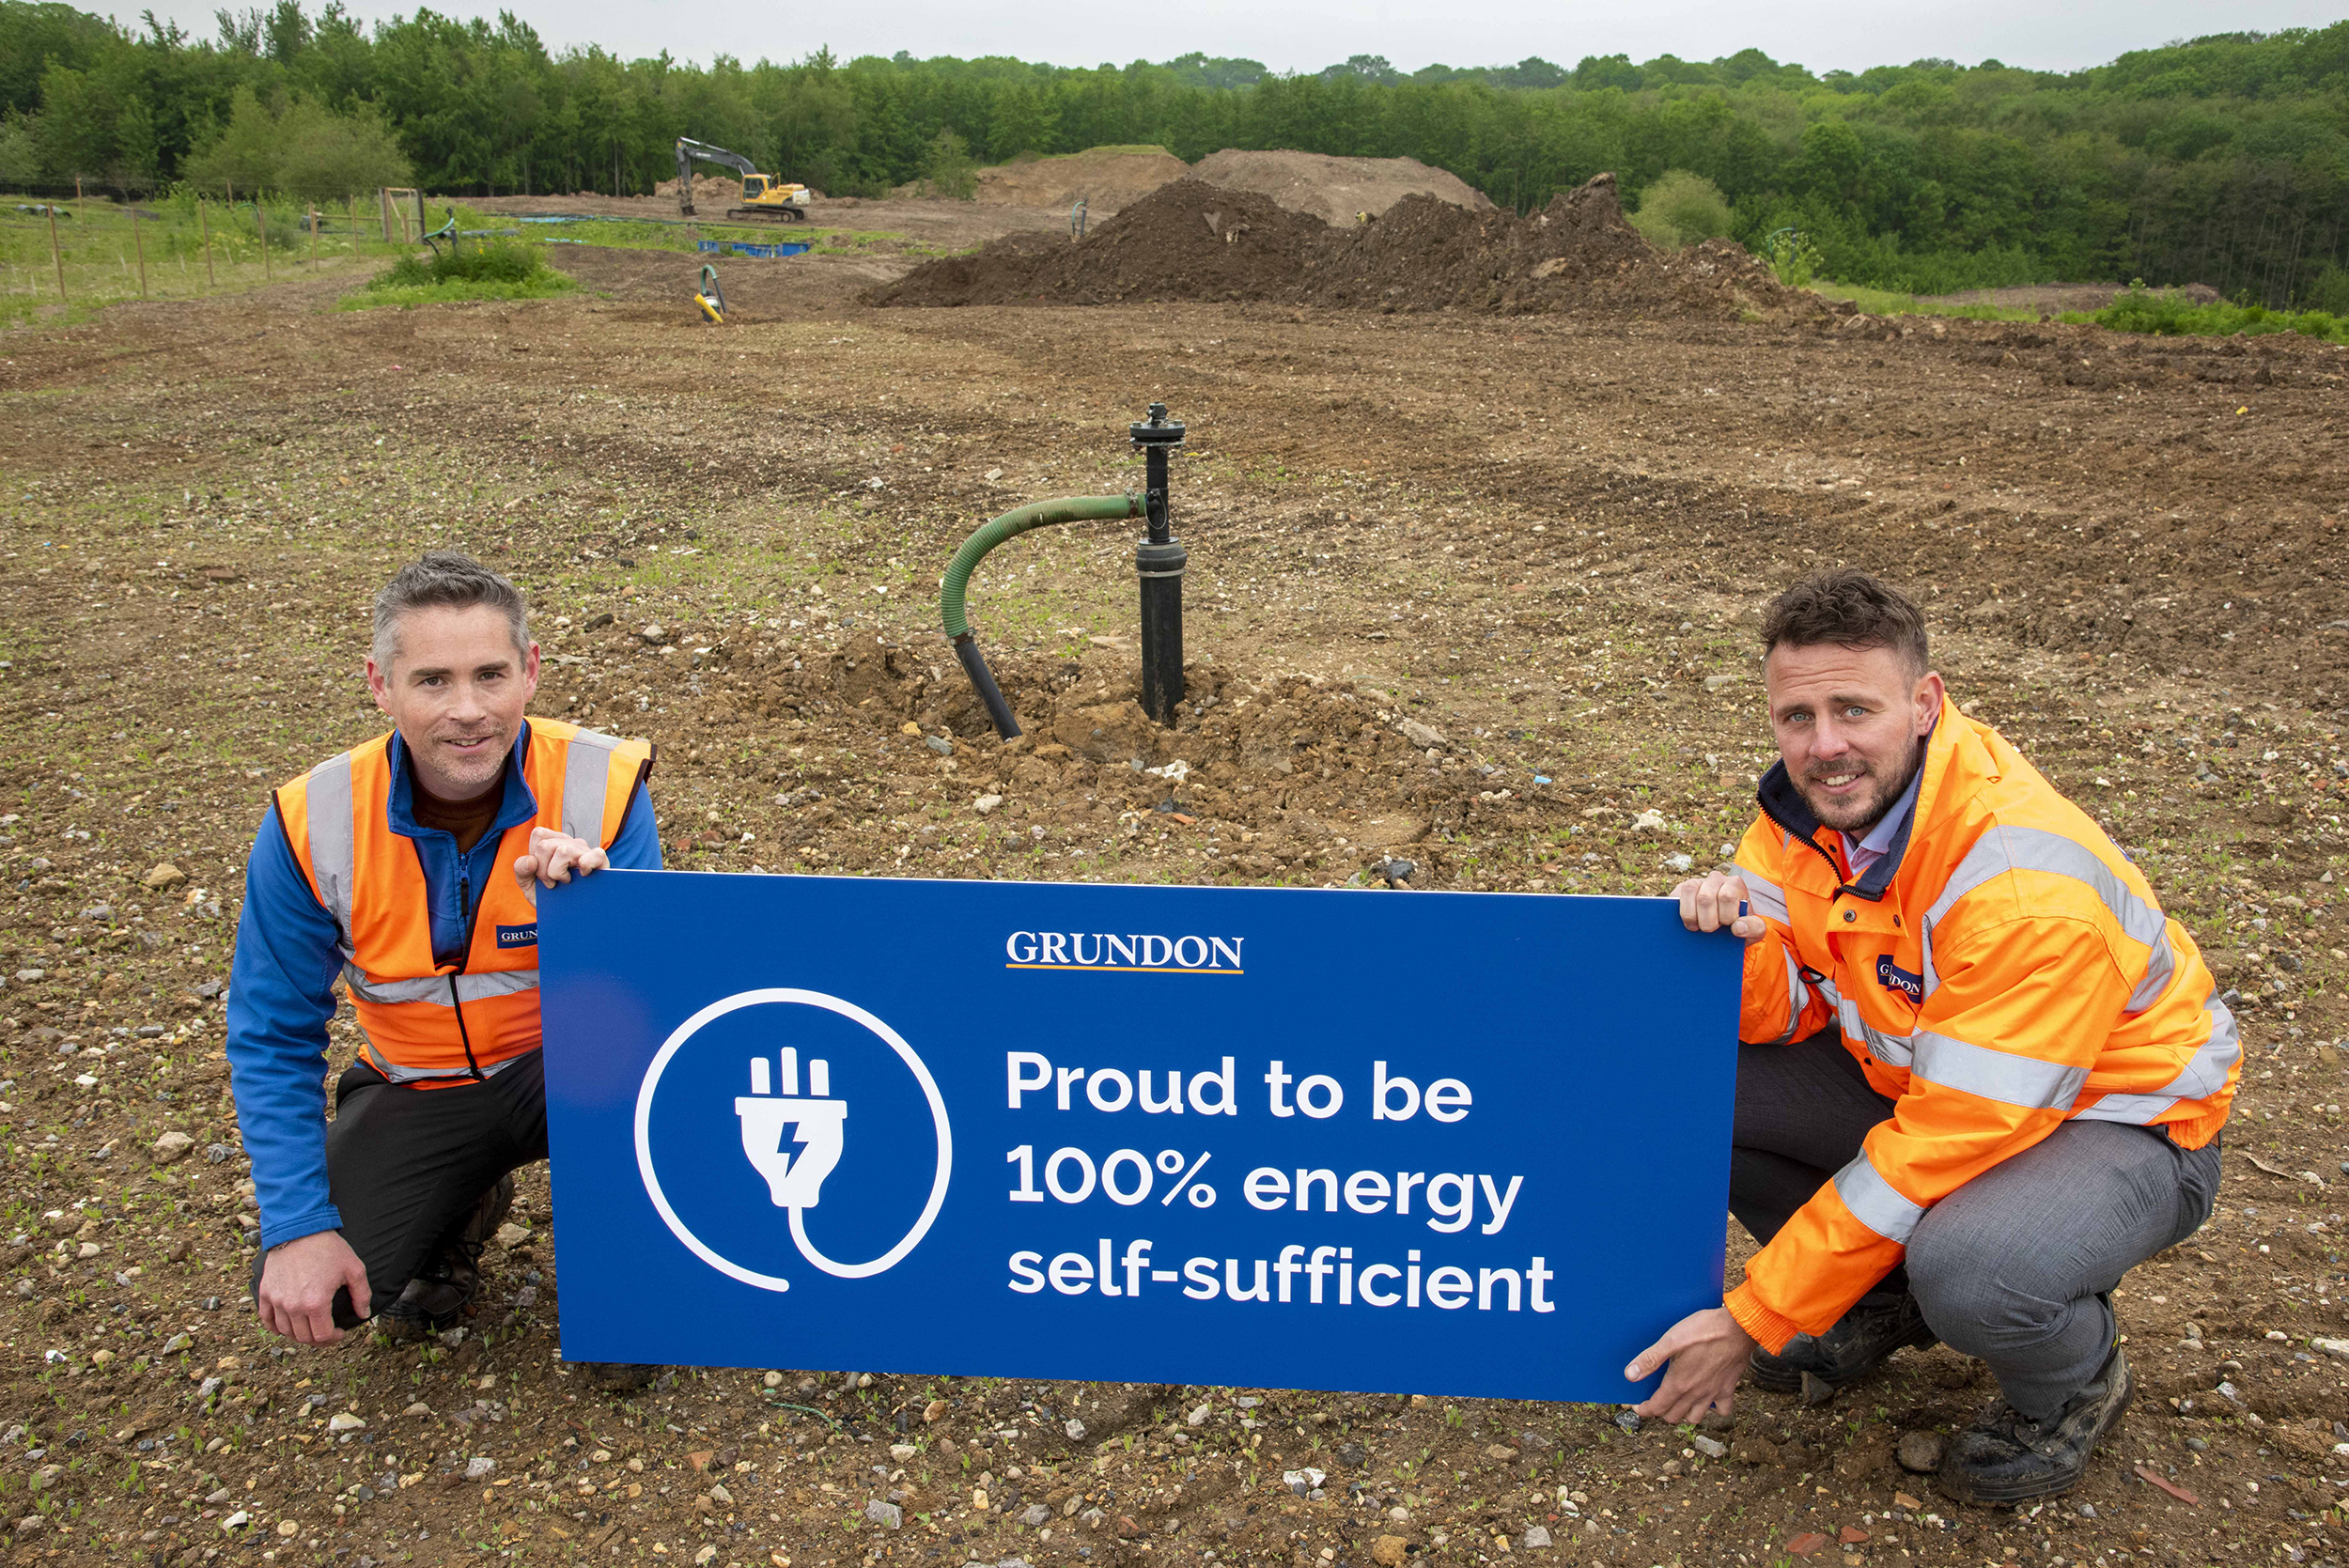 Grundon's clinical waste operations, based at its Knowl Hill site in Berkshire, will now be generating around 350kW of renewable energy from its adjacent former landfill site via a gas engine. The engine will provide the entire site with renewable energy with at least a third of the output being sent to the National Grid.